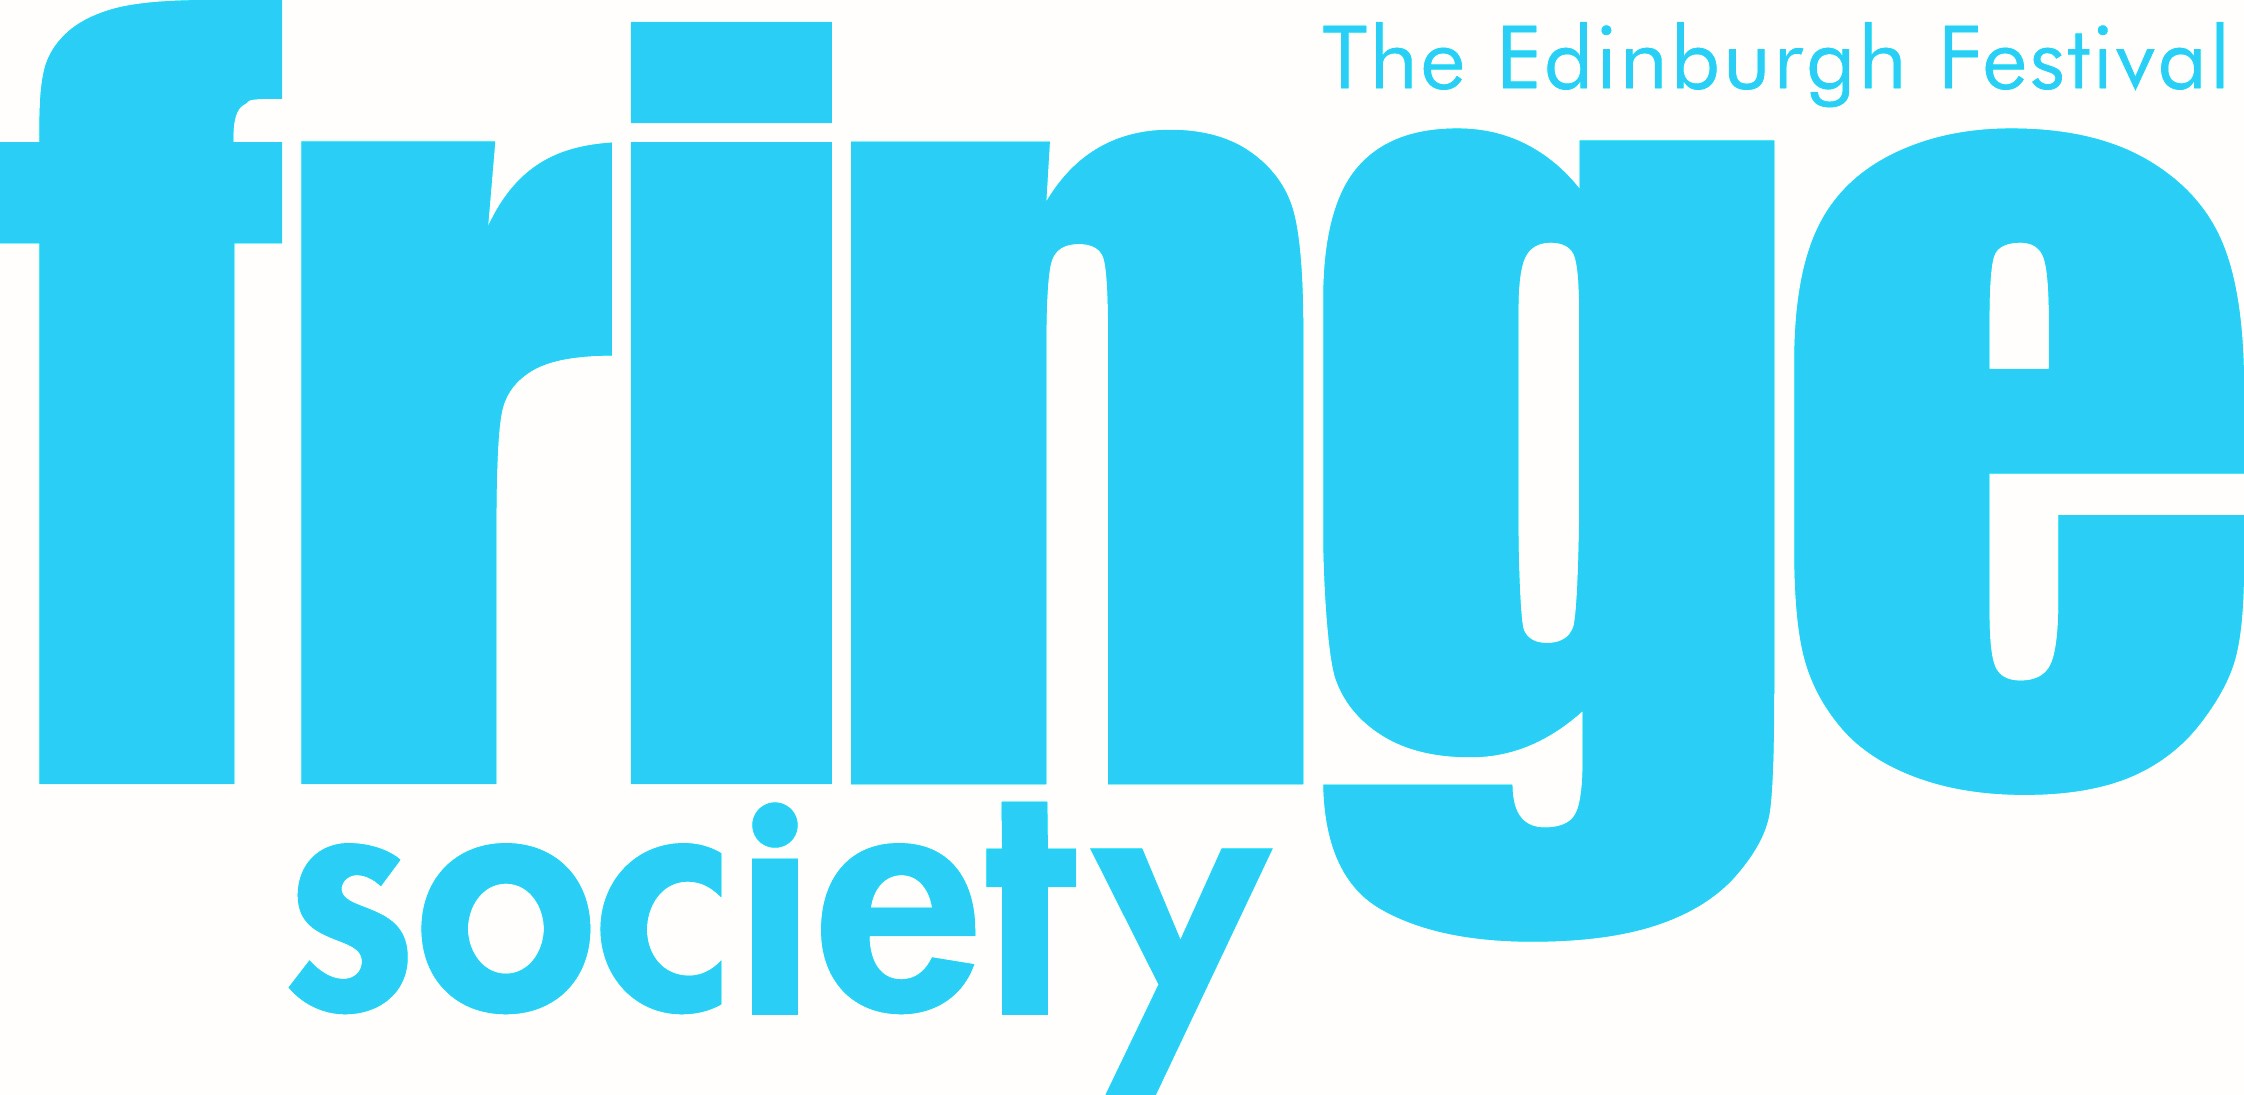 Edinburgh Festival Fringe Society Ltd